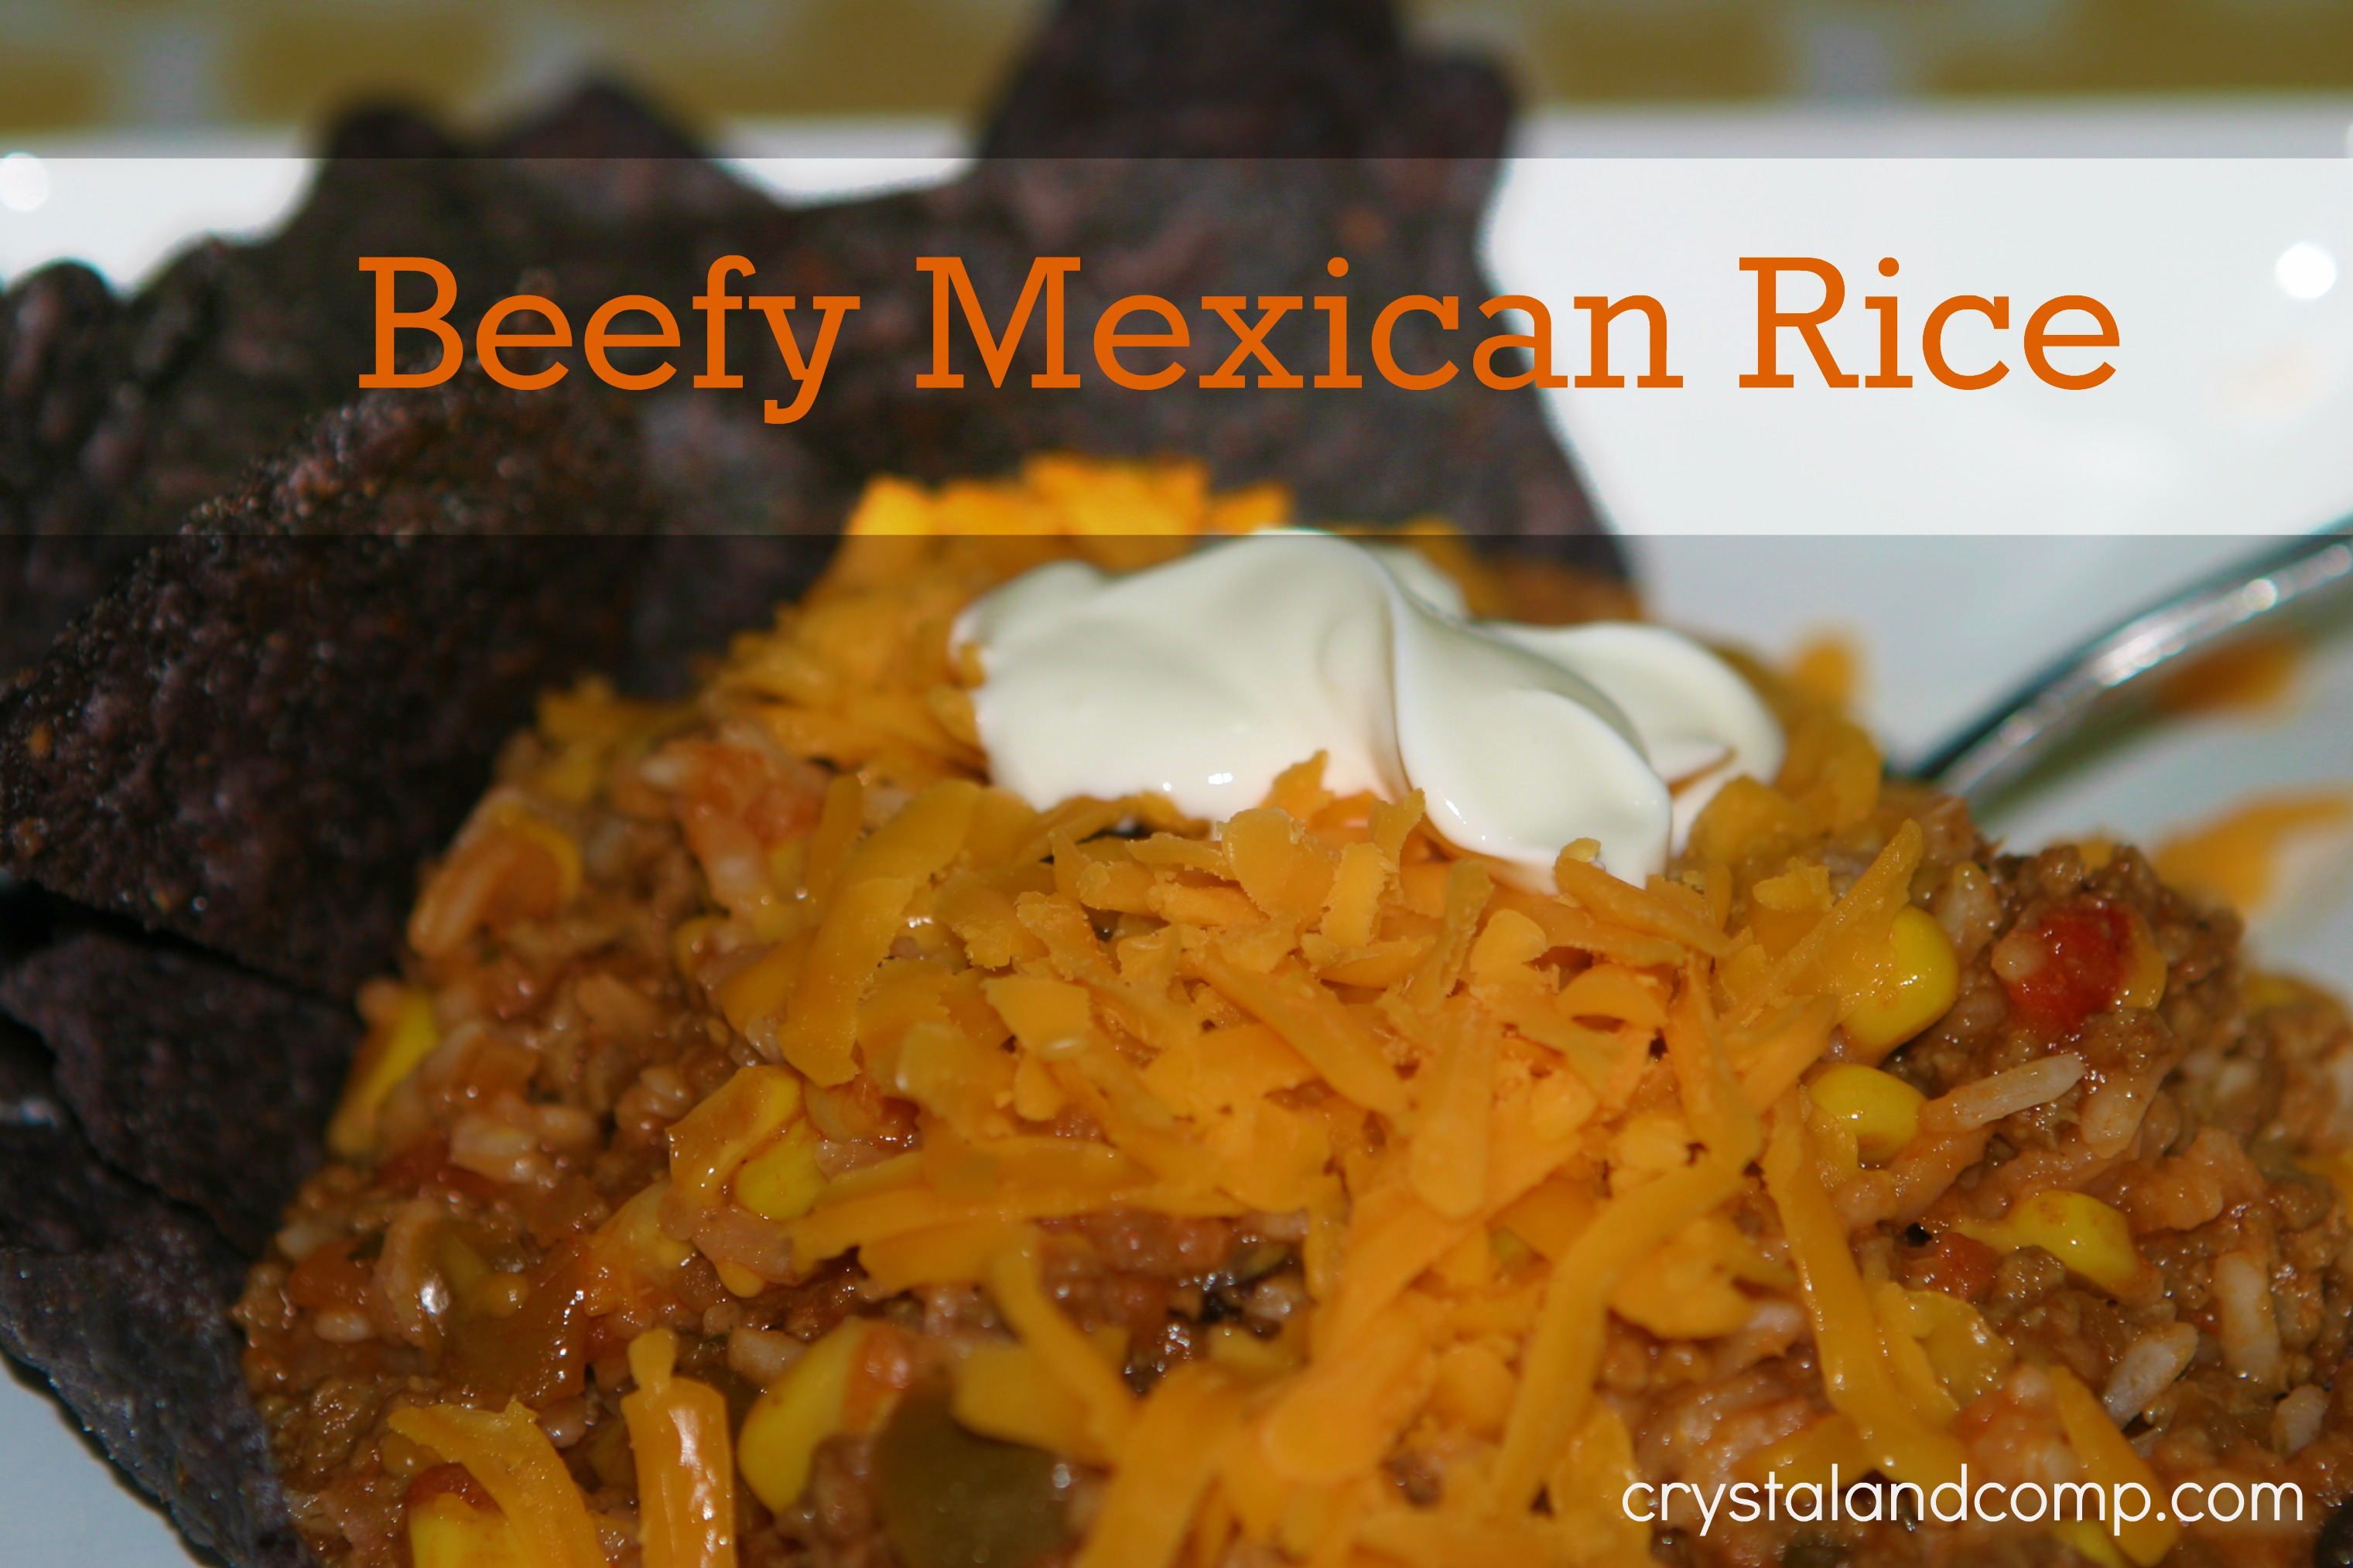 easy recipes beefy mexican rice a family recipe crystalandcomp com